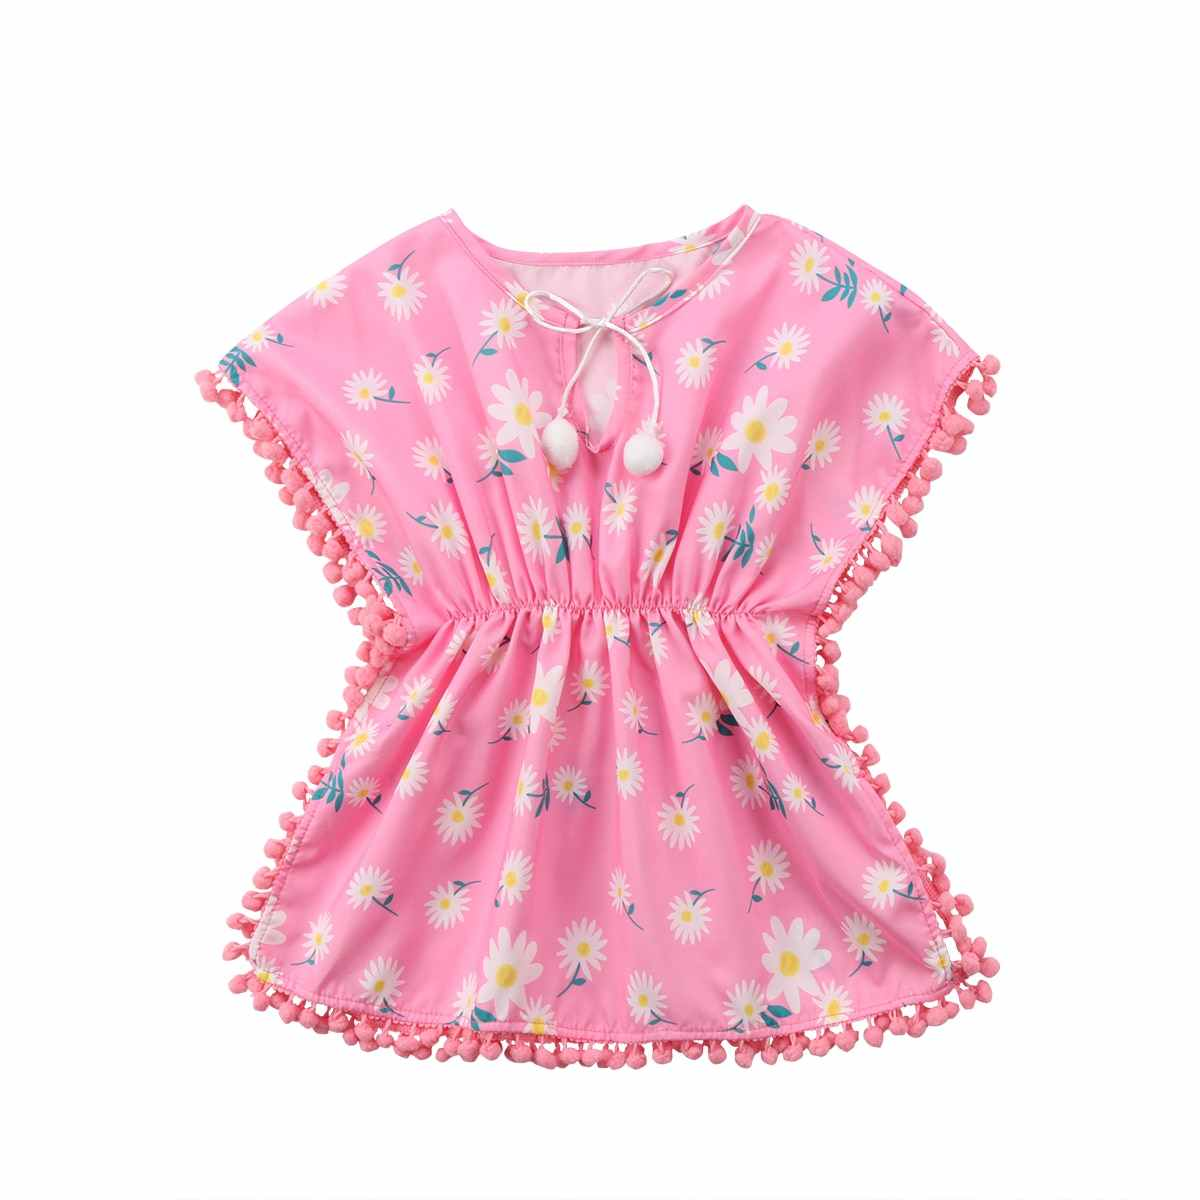 a637643bc055 Fashion Kids Baby Girls Dress 2018 Floral Pom Pom Beach Dress Sundress Cute  Baby Girls Clothes